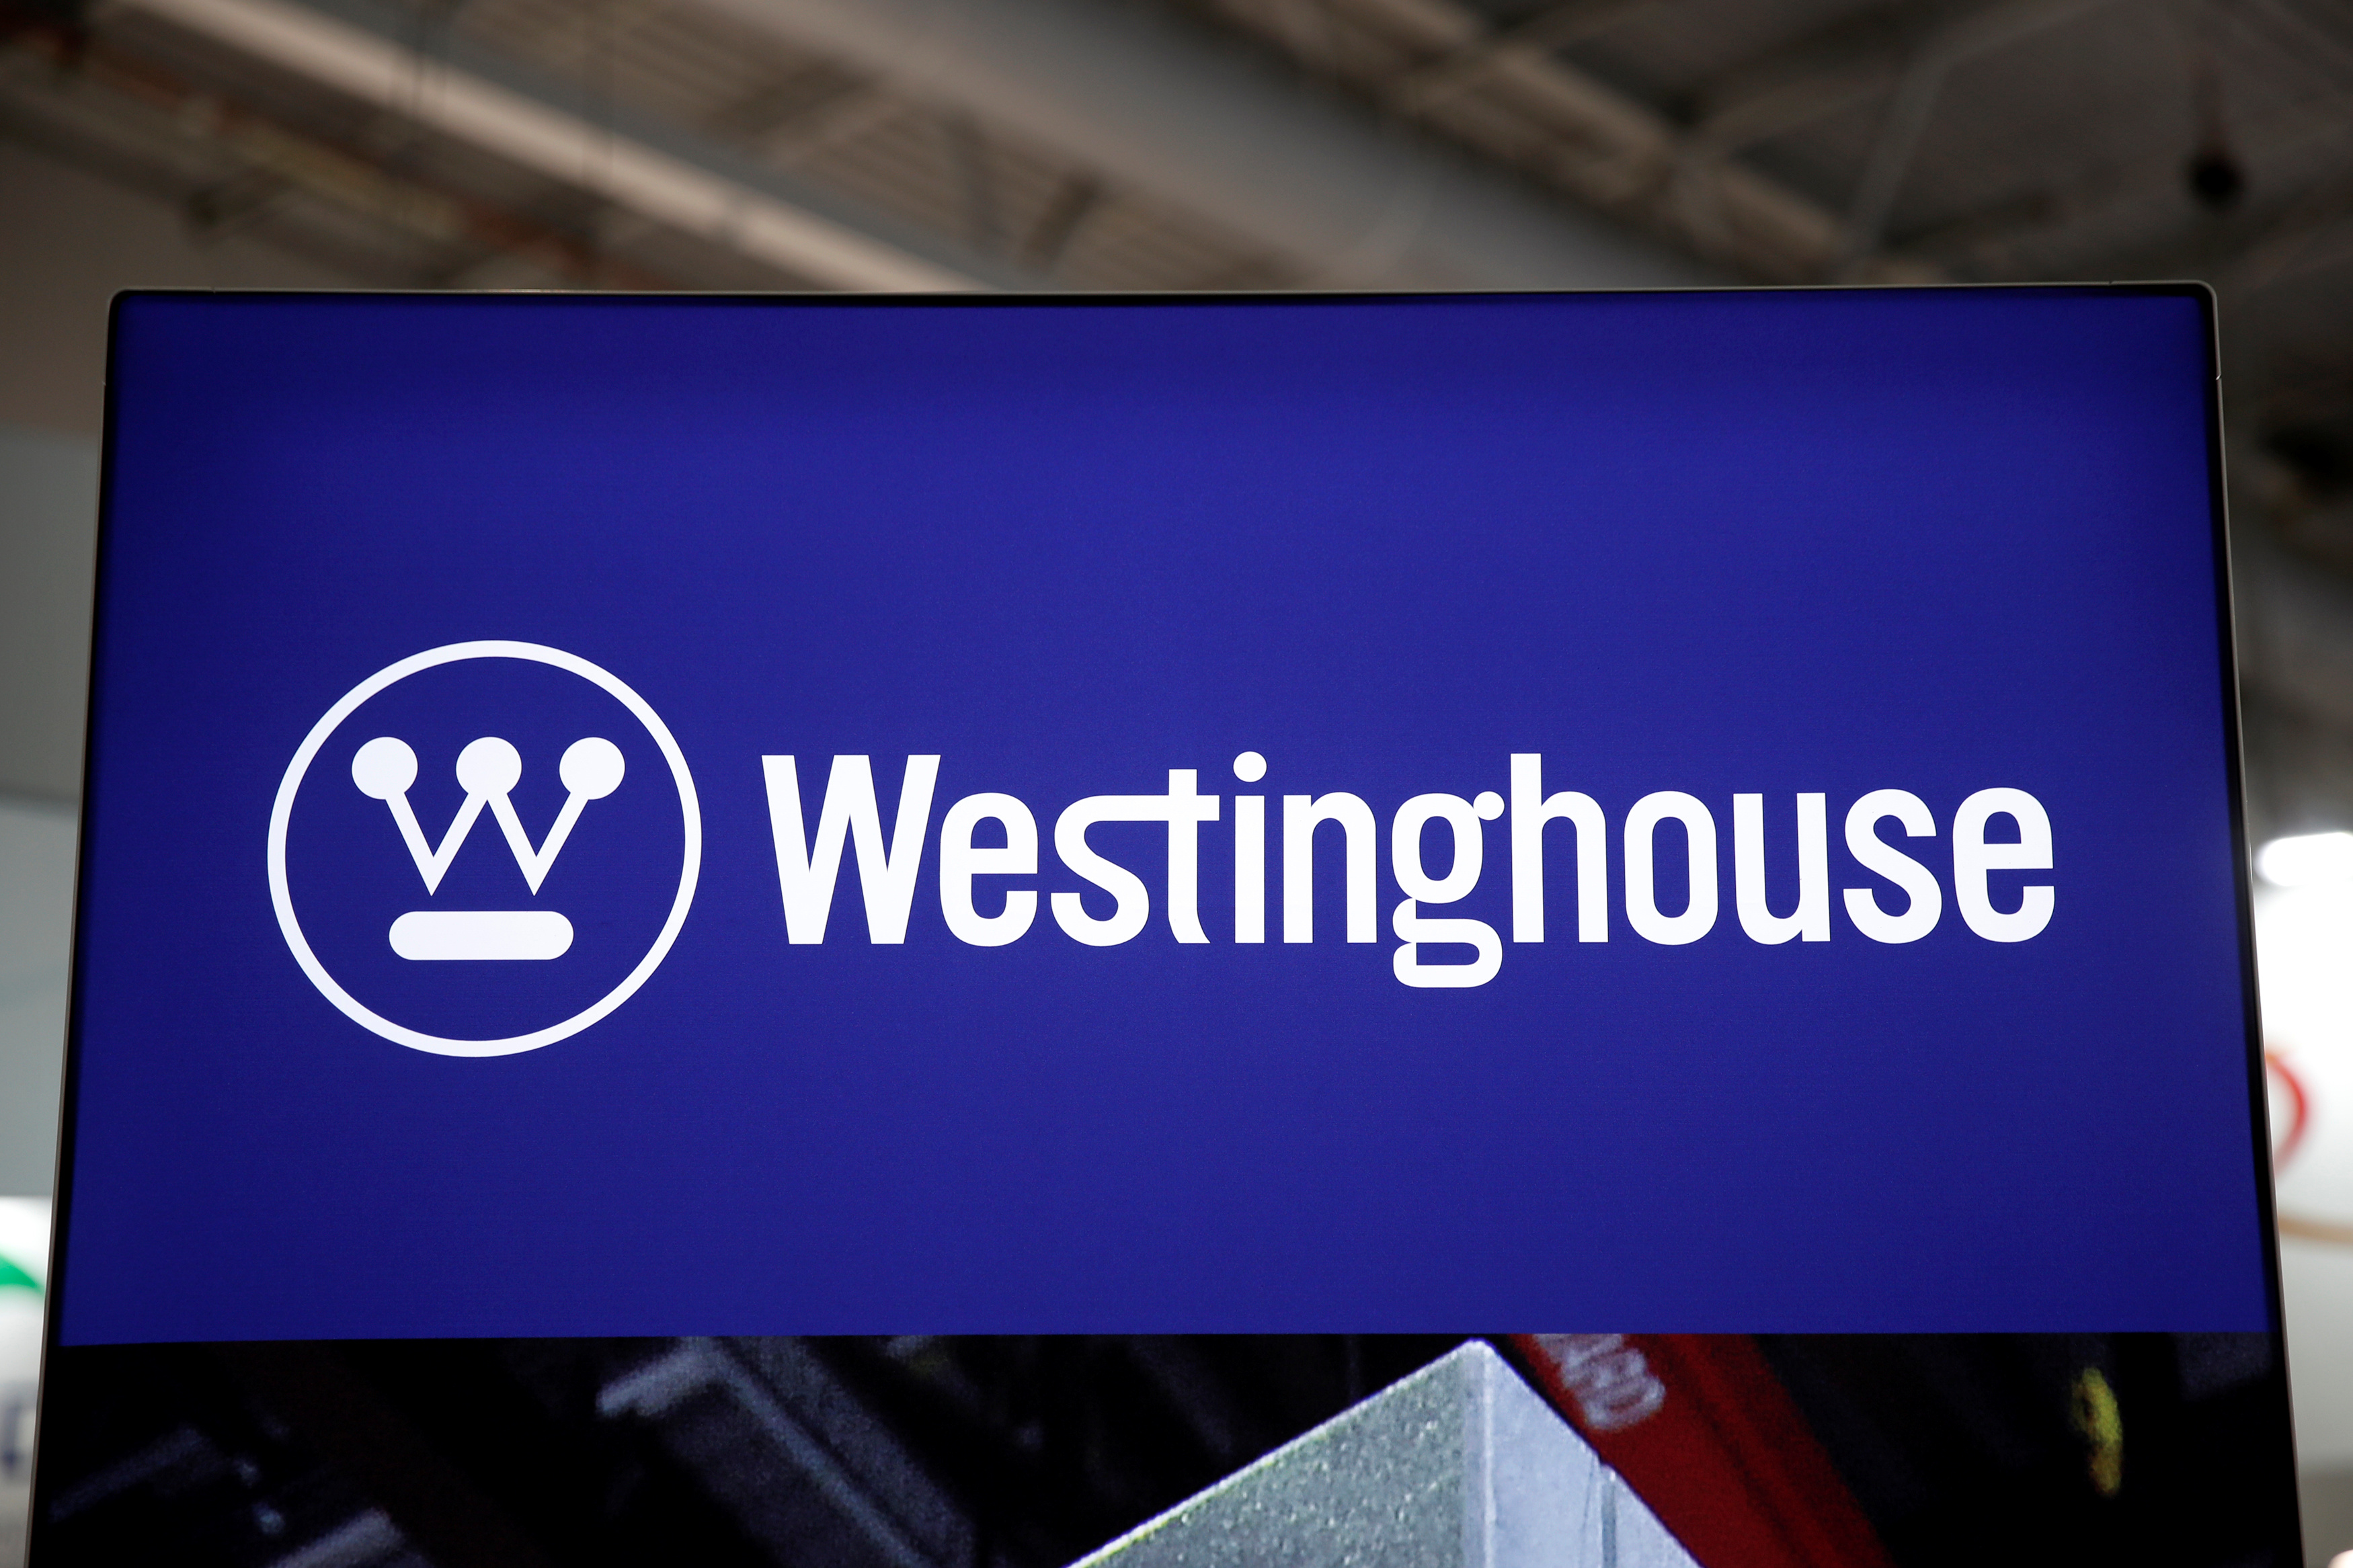 The logo of Westinghouse Electric Corp. is pictured at the World Nuclear Exhibition (WNE) in Villepinte near Paris, France, June 26, 2018. REUTERS/Benoit Tessier